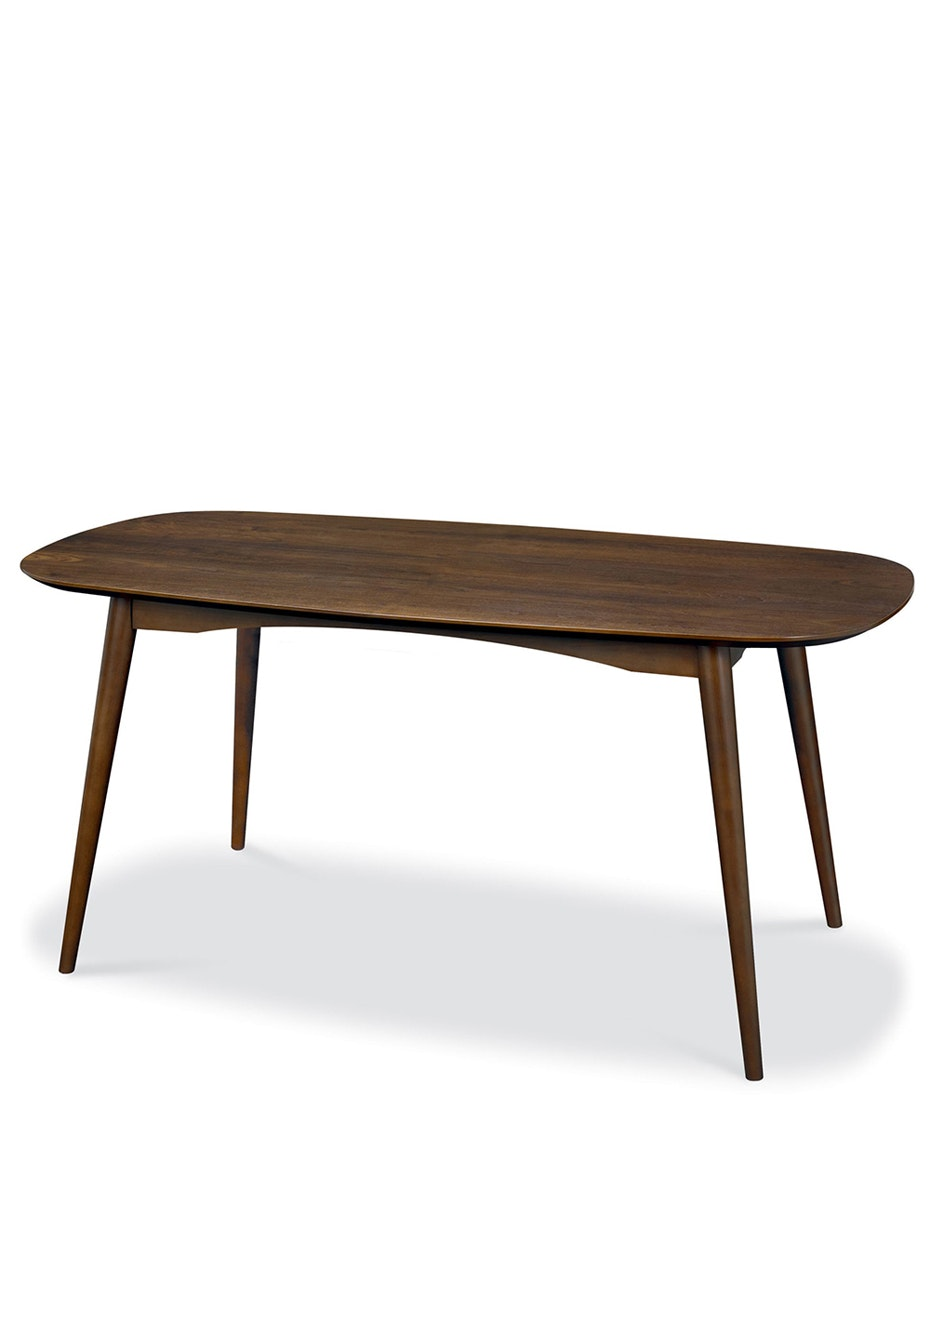 Furniture By Design - Oslo Dining Table- Walnut Veneers and Solid Walnut